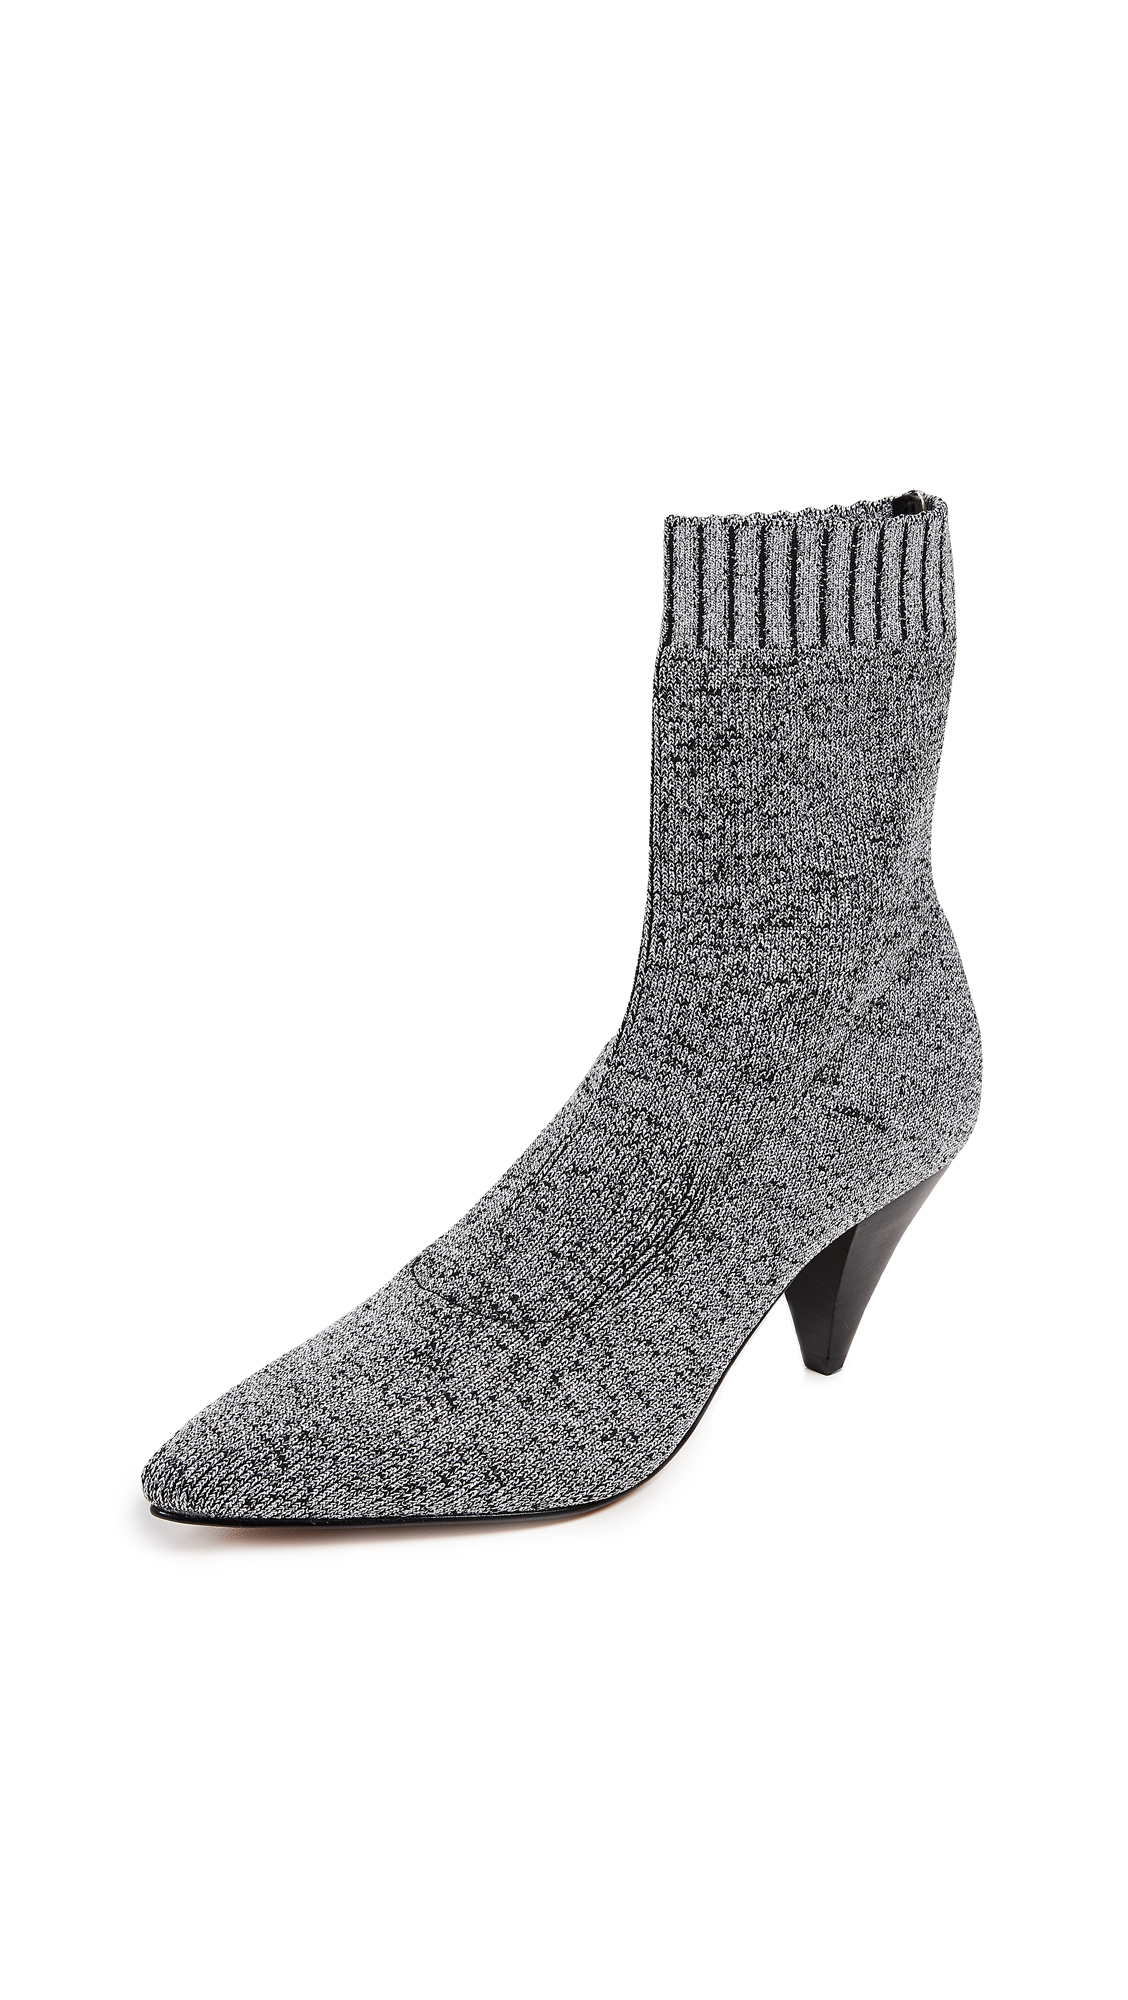 Dolce Vita Tao Knit Booties - Silver